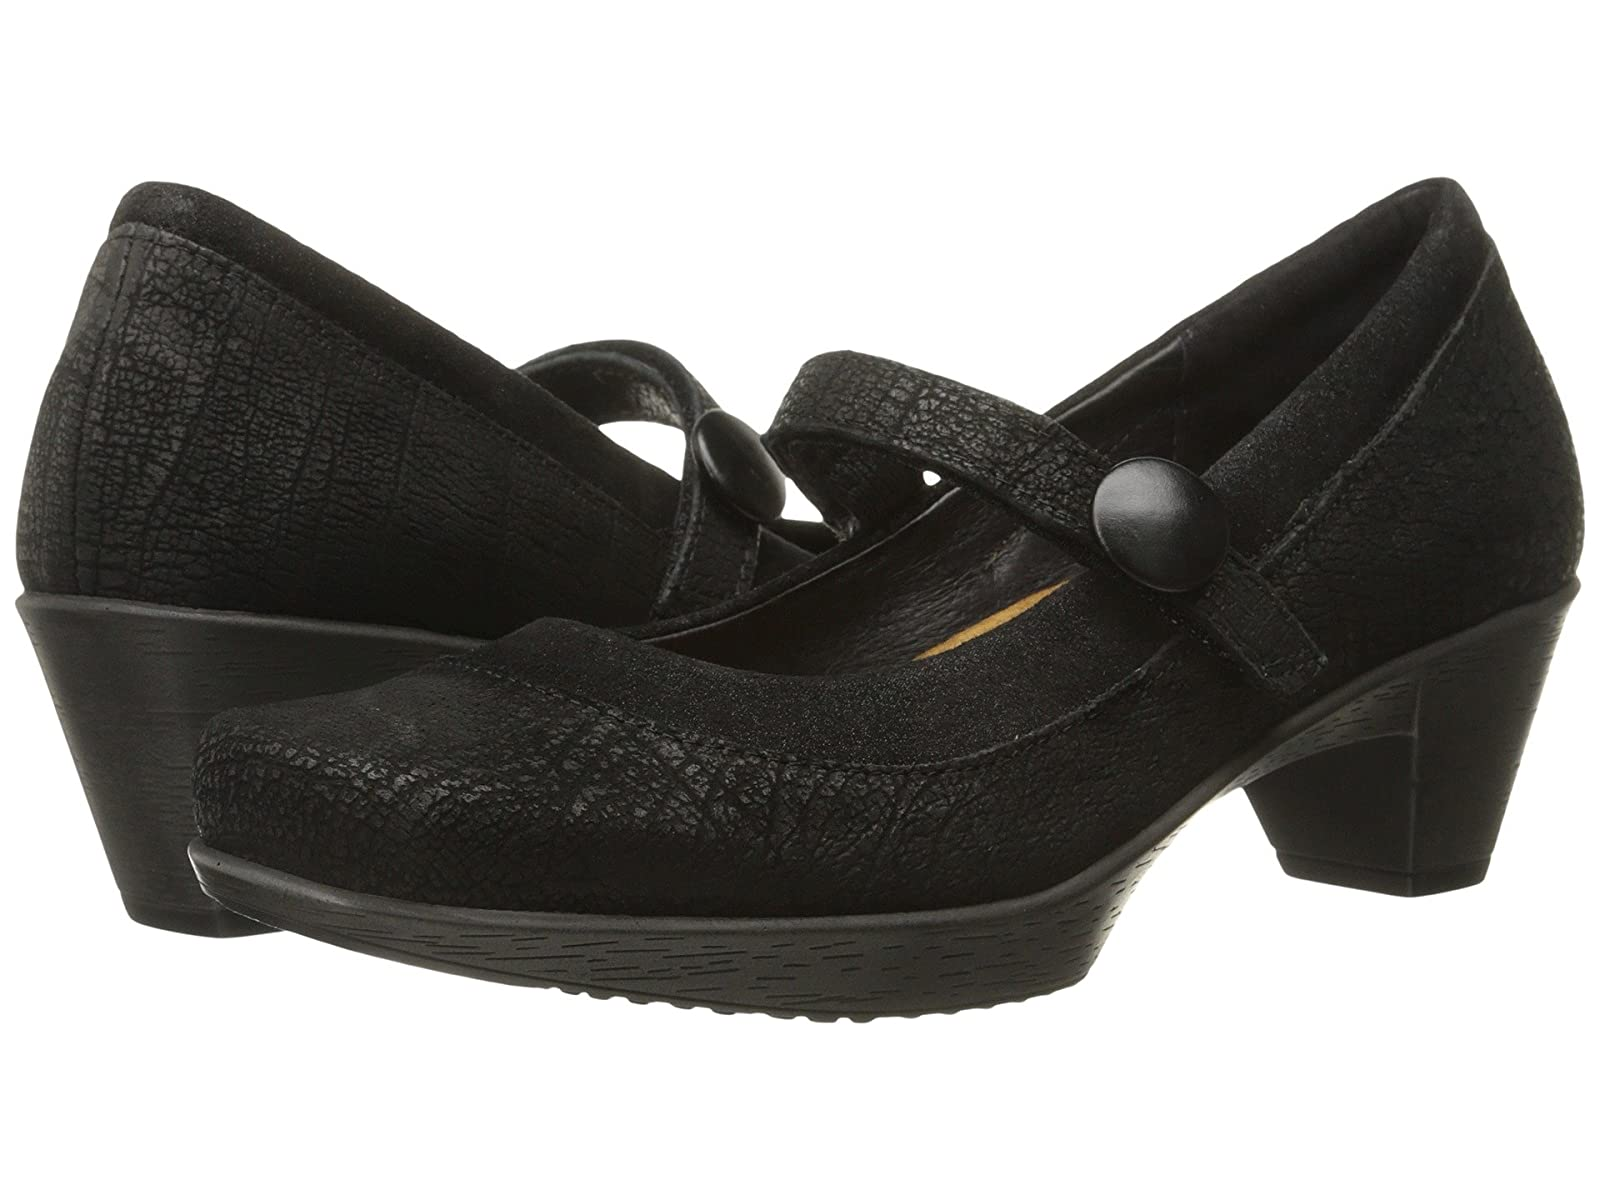 Naot LatestCheap and distinctive eye-catching shoes